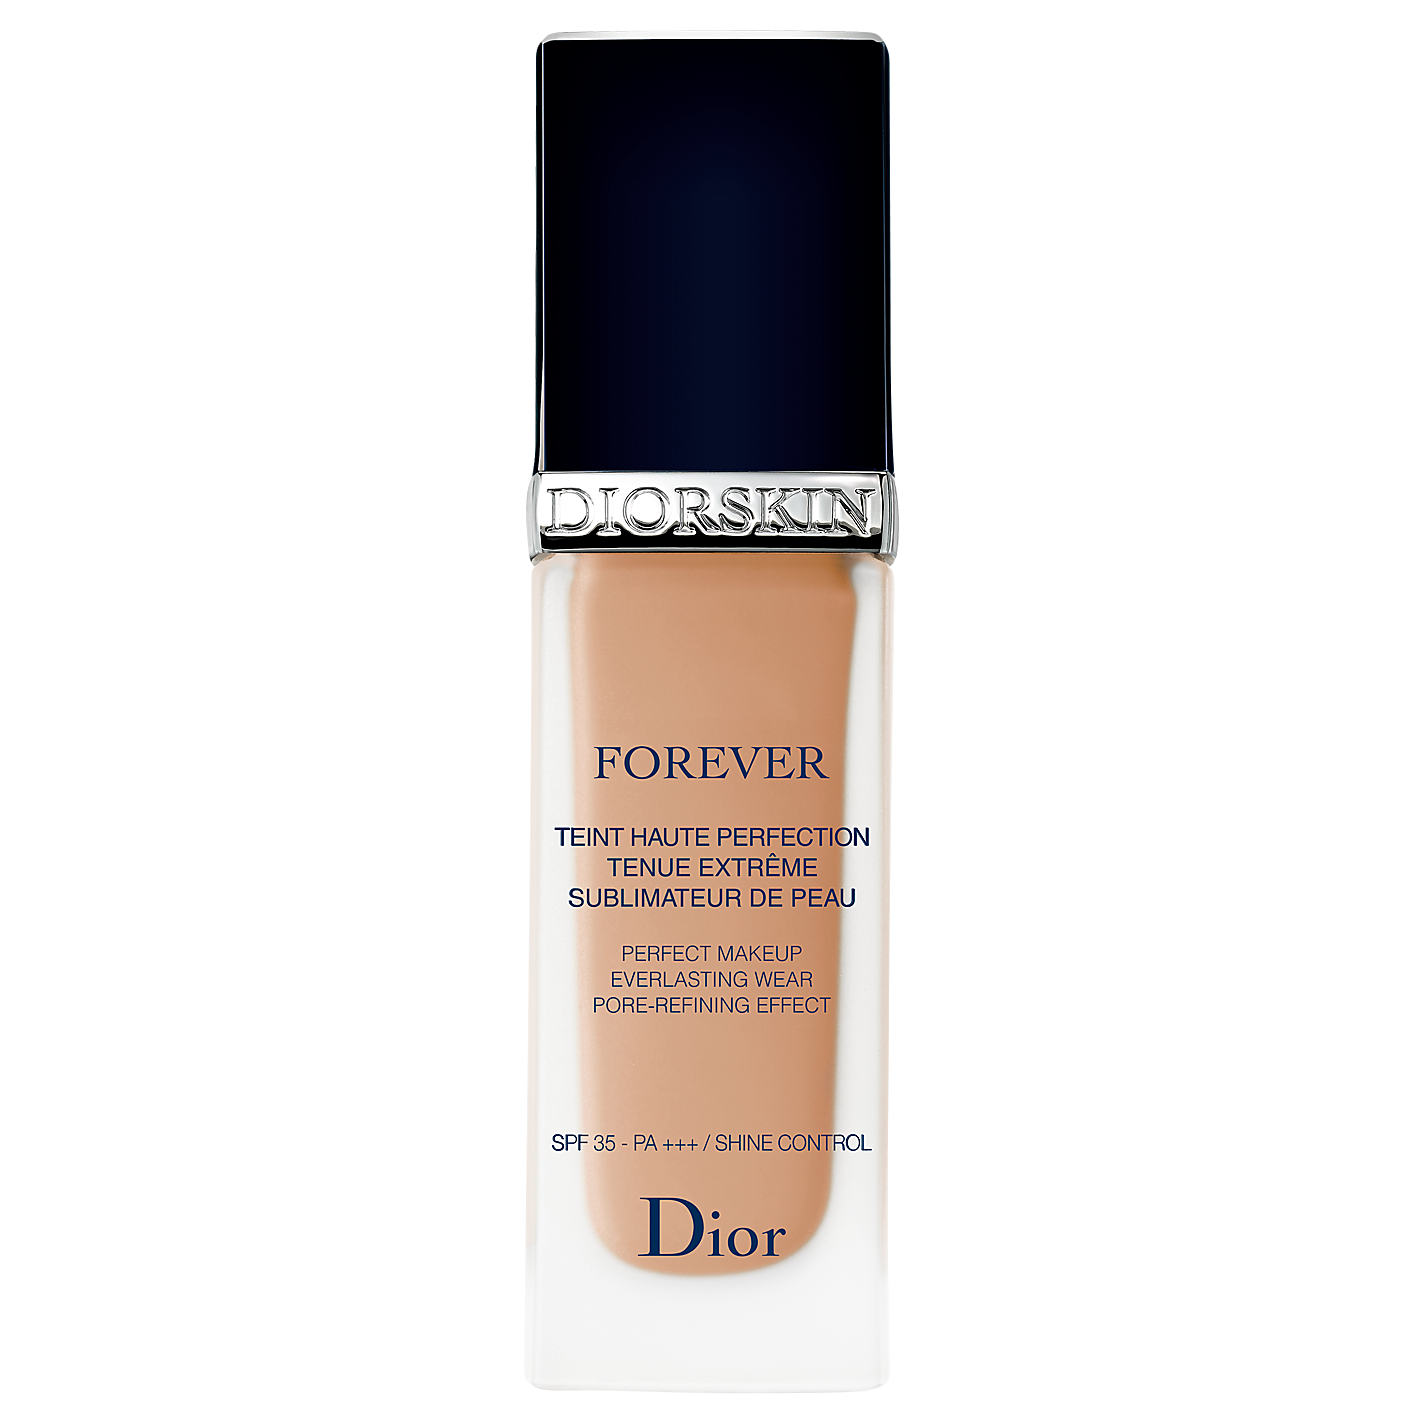 Diorskin Forever Foundation - A favorite of every makeup artist with an Instagram page, the Diorskin Forever foundation is a product that has endless rave reviews. It applies best with a flat top brush and lasts all day without separating, or clinging to dry skin, which is always appreciated. Image via